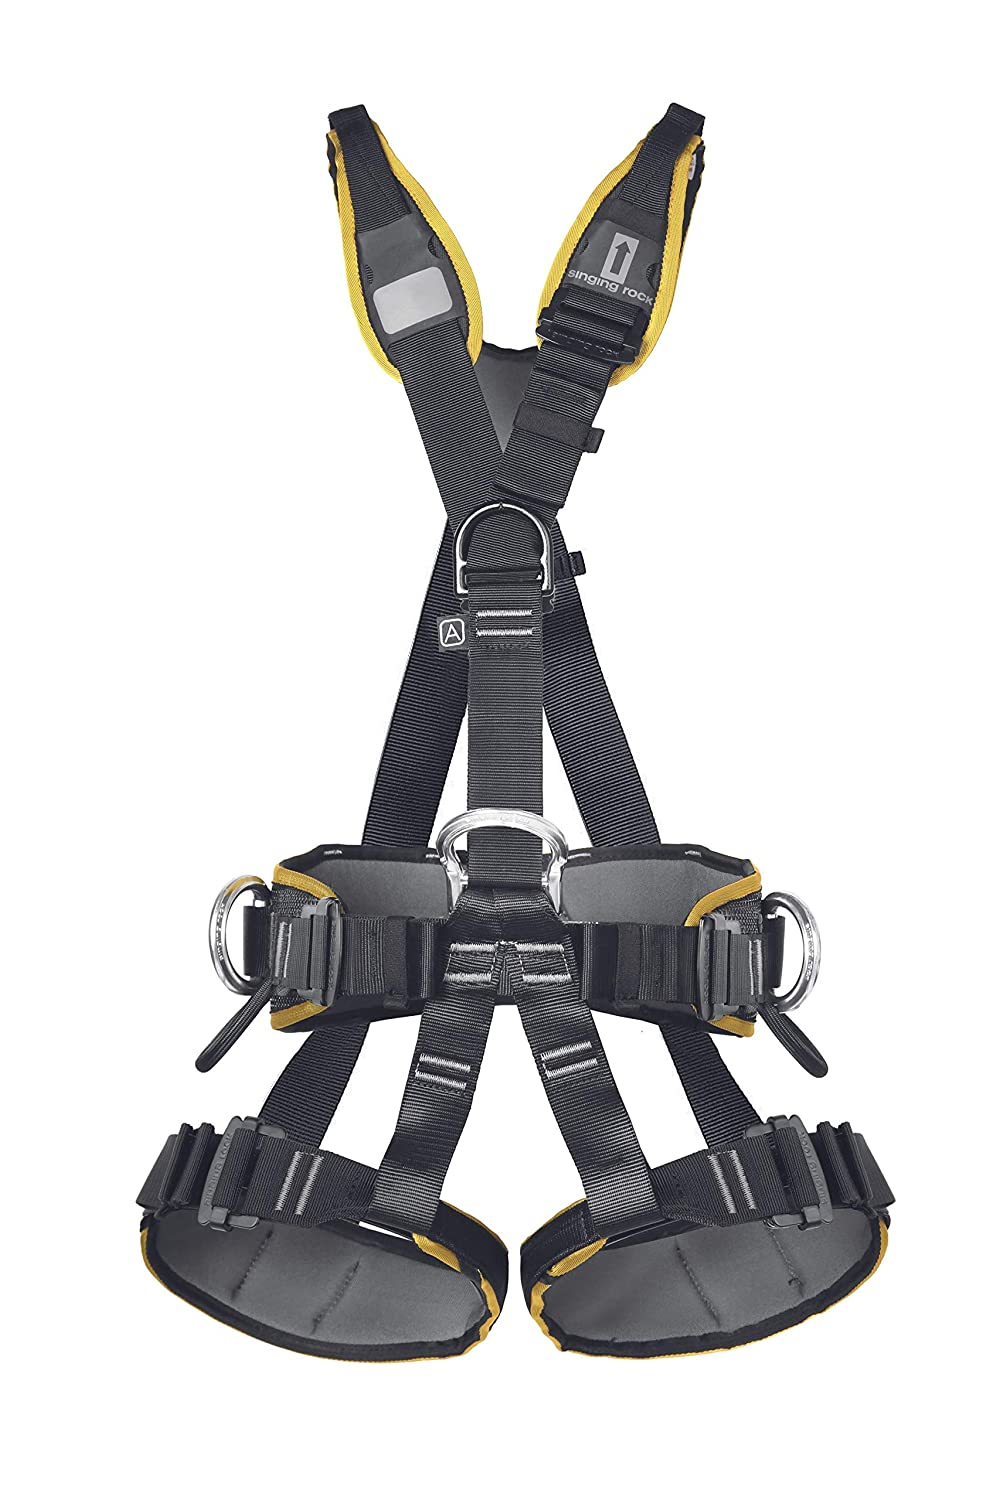 SINGING ROCK Profi Worker III Easy Lock Harness Black XL: Amazon ...